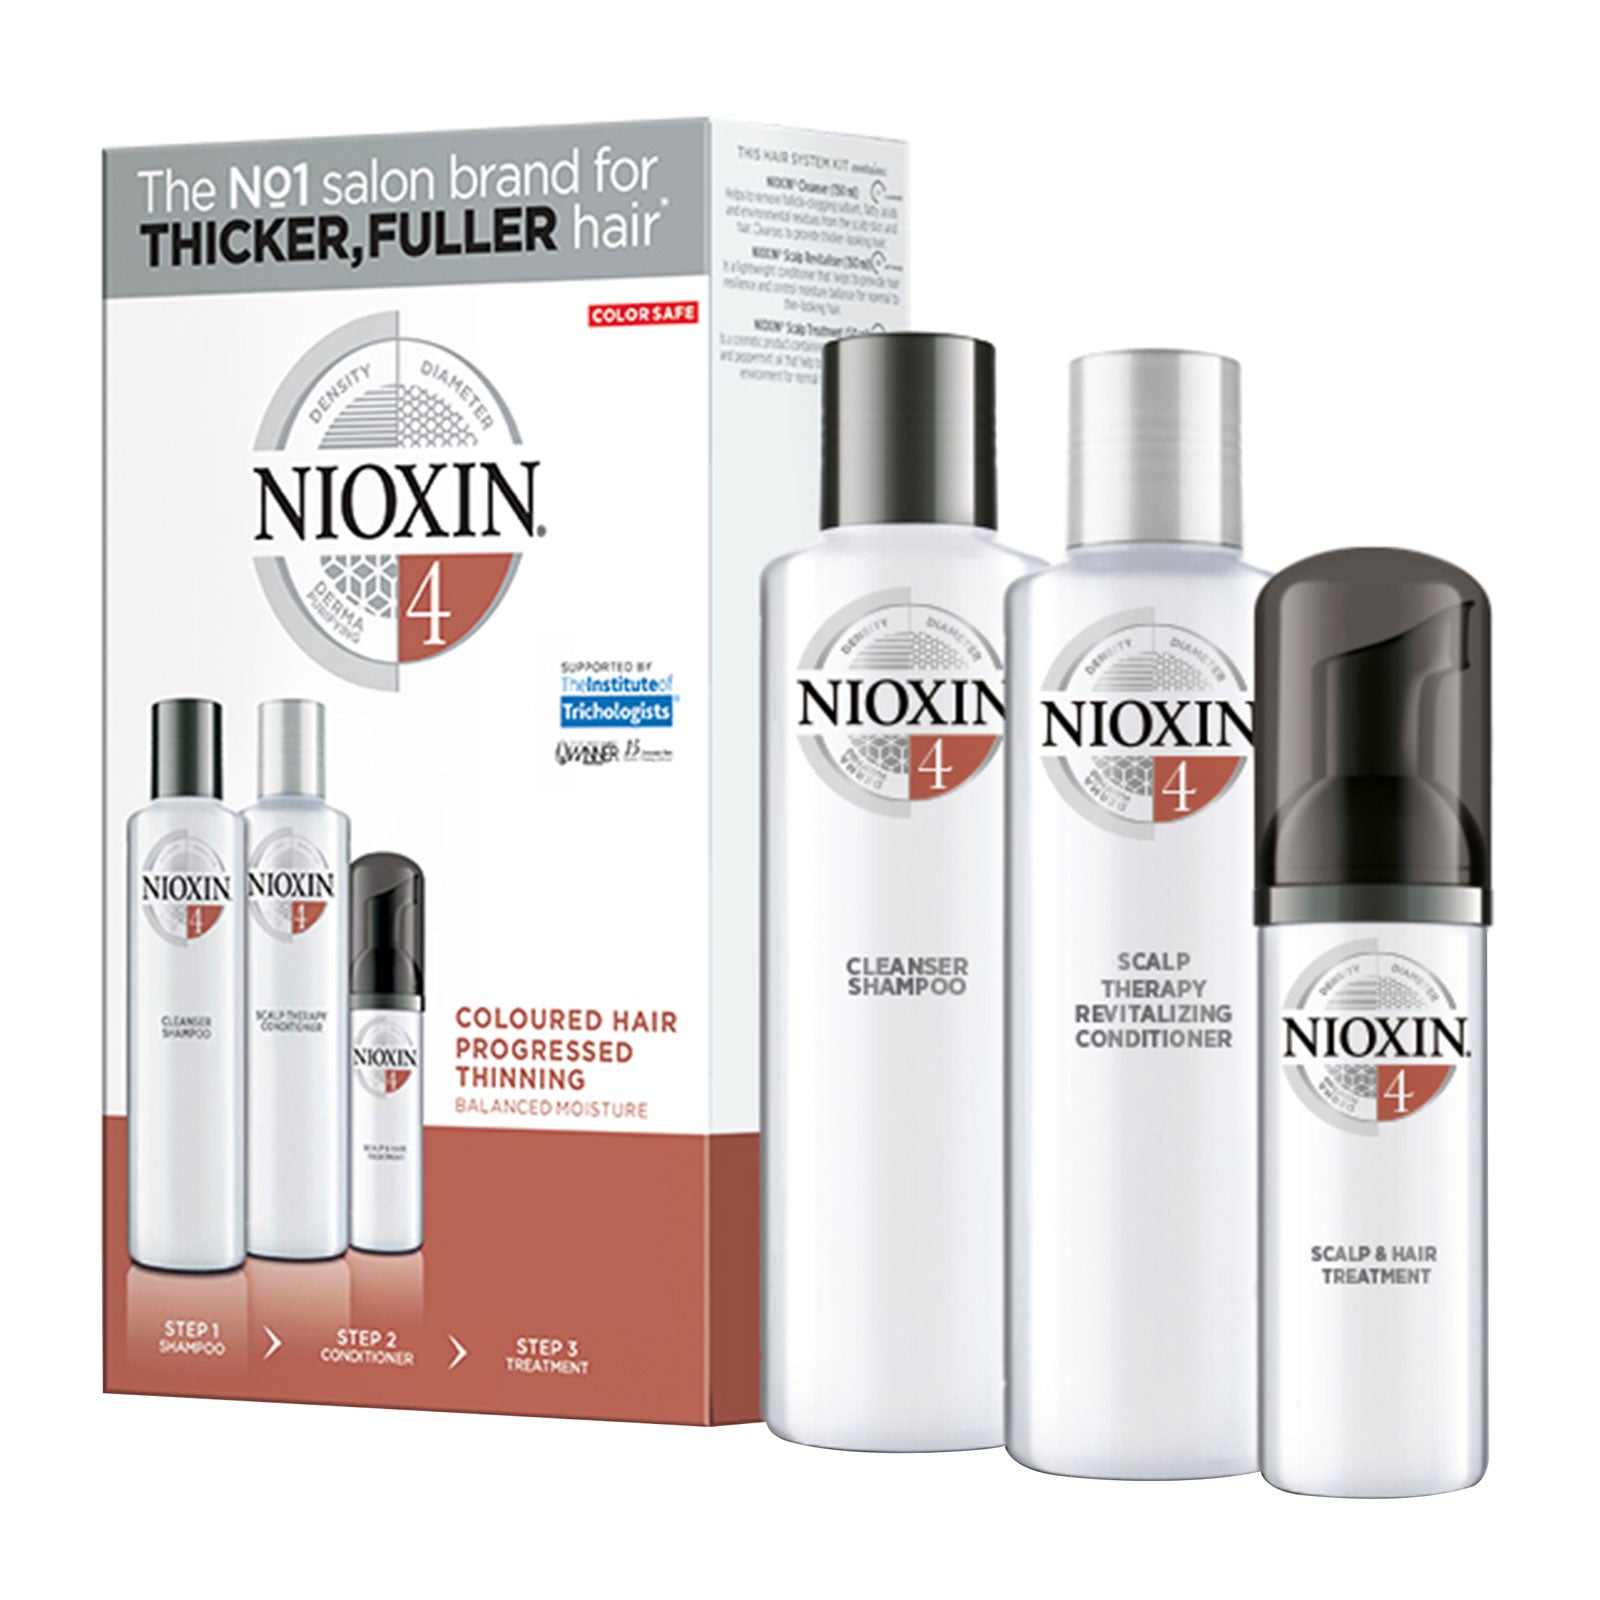 NIOXIN 3-part System Kit 4 for Colored Hair with Progressed Thinning